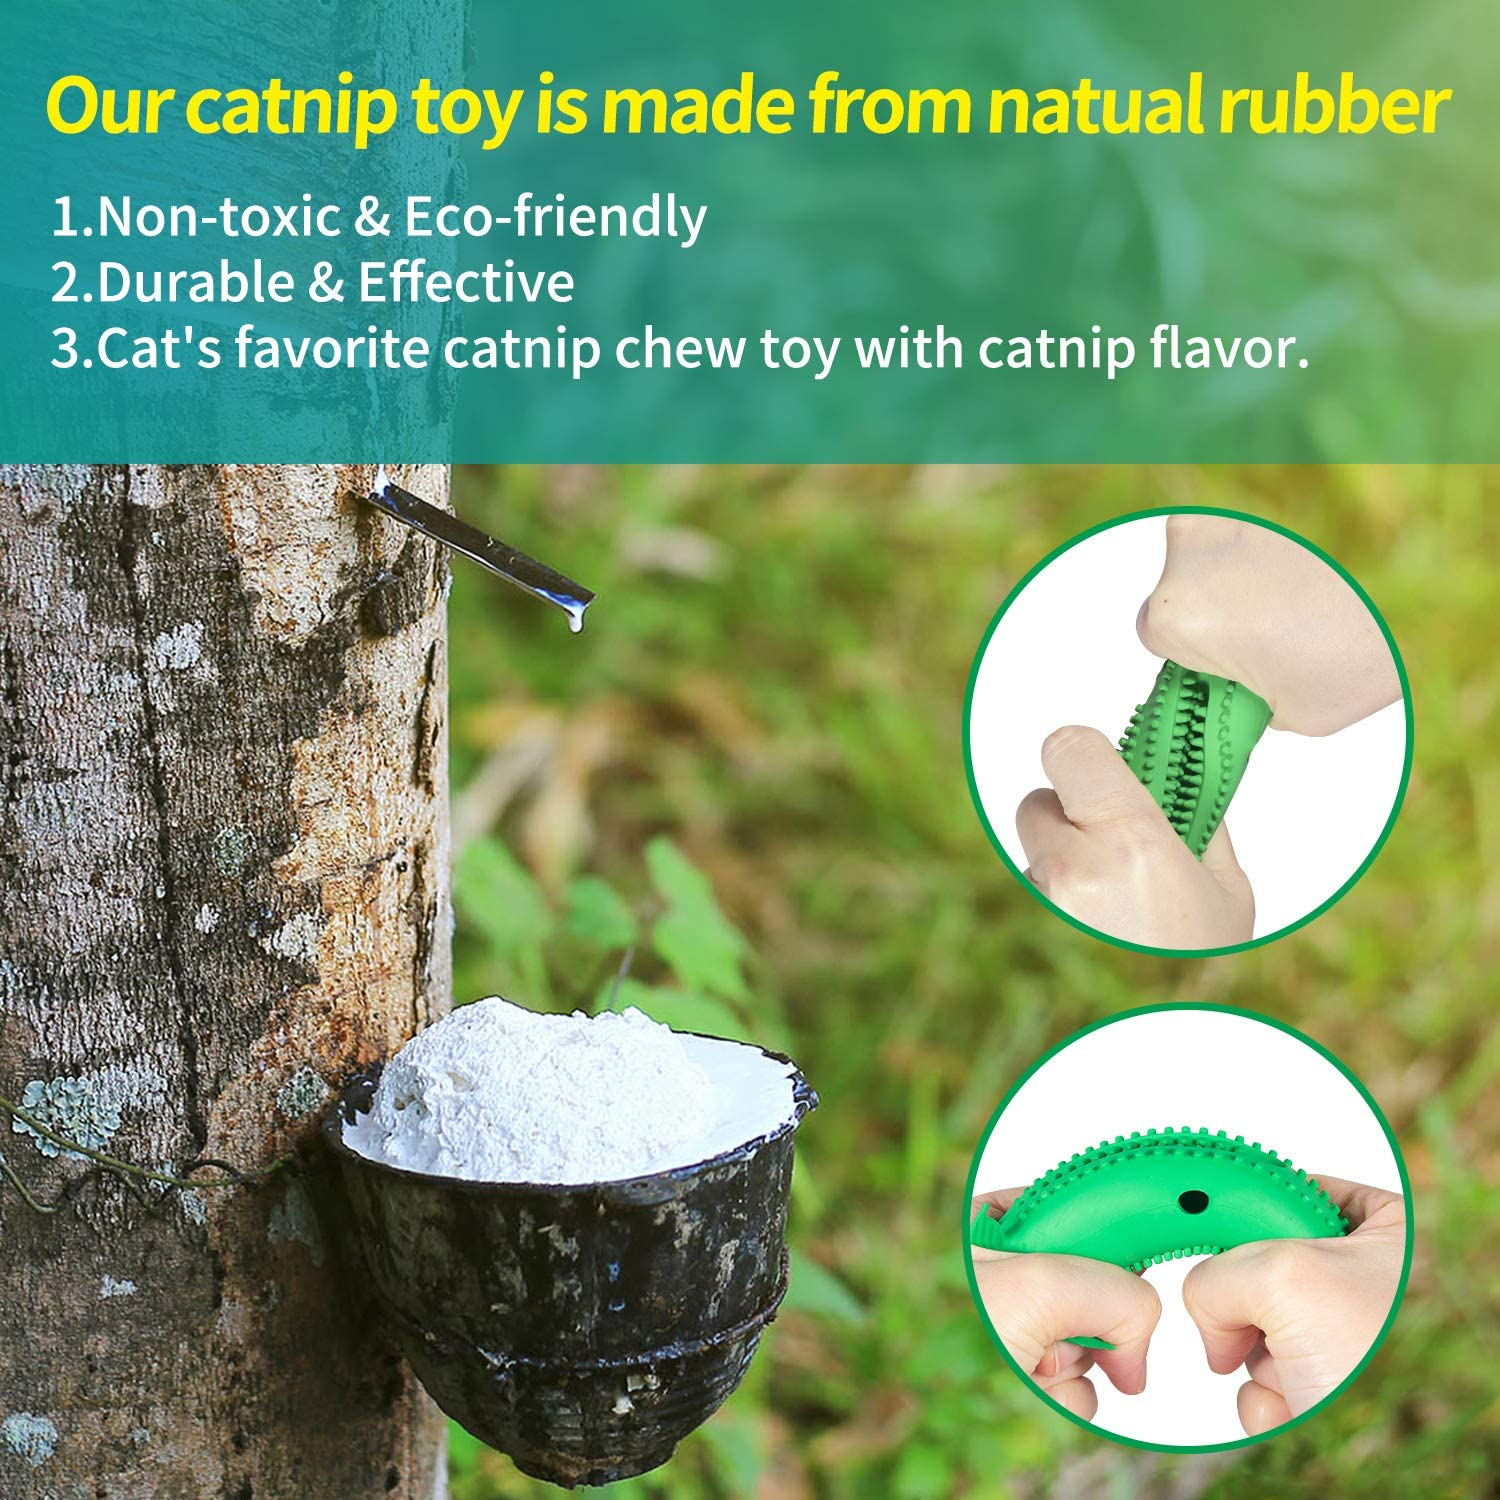 HIRALIY Catnip Toys Natural Rubber Interactive Fish Cat Toy Bite Resistance Cat Toothbrush Chew Toy Cat Teeth Cleaning Toys with Bell for Kitten Kitty